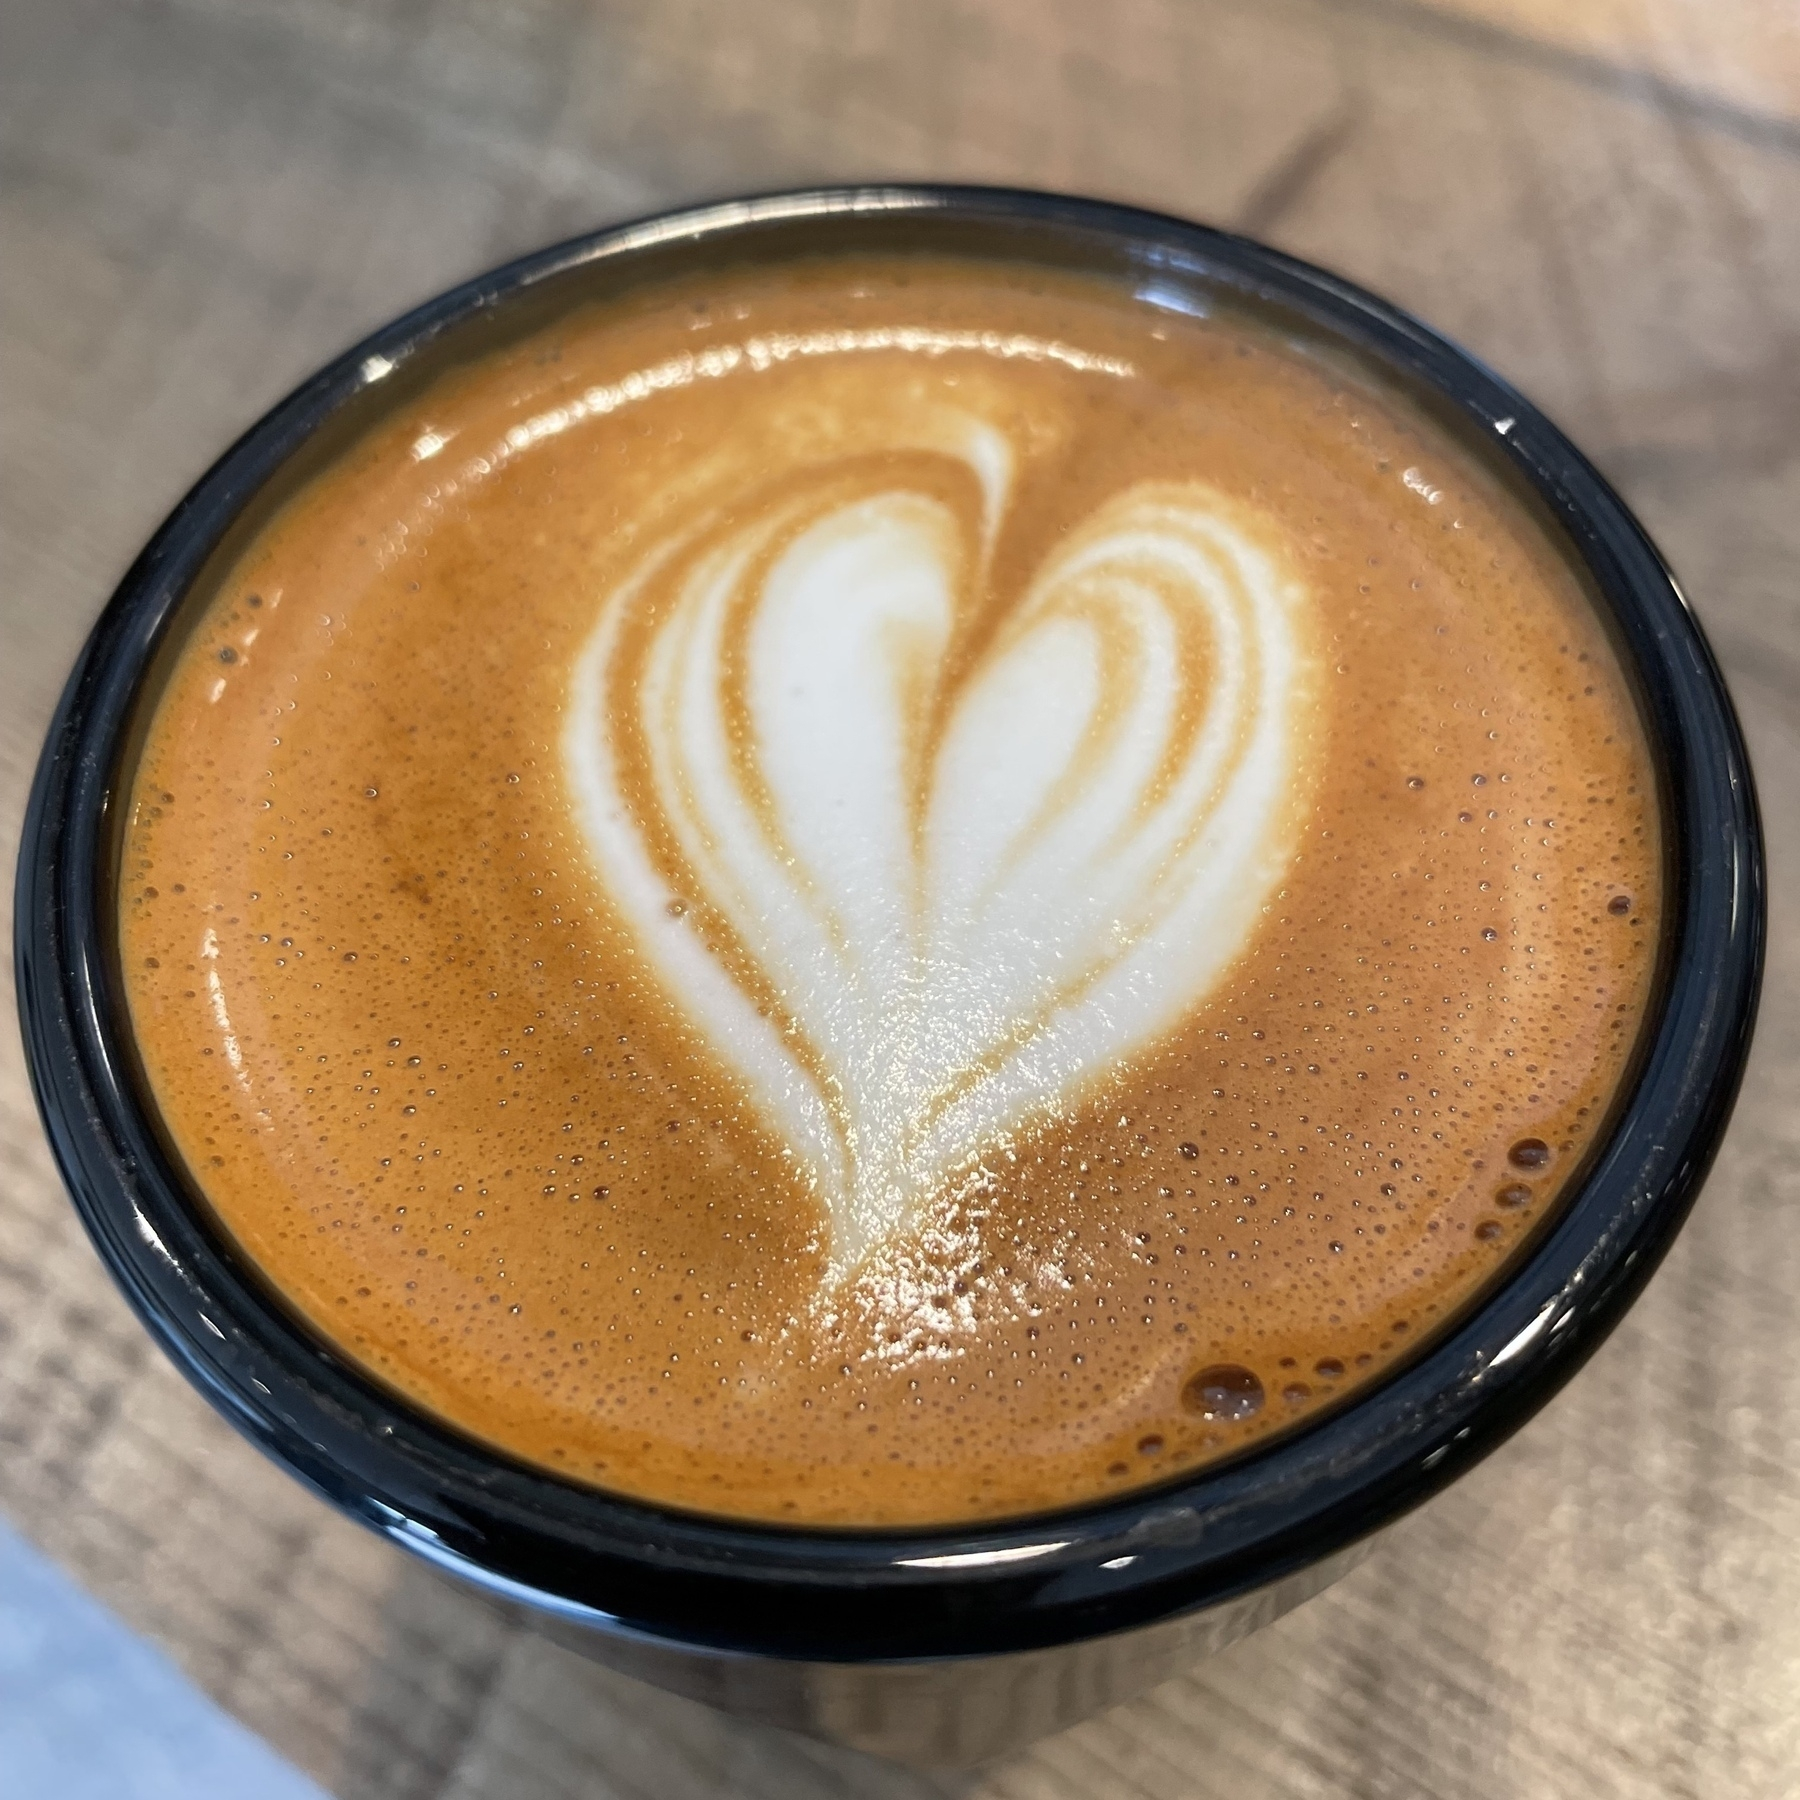 Heart pattern in milk at top of coffee in cup.